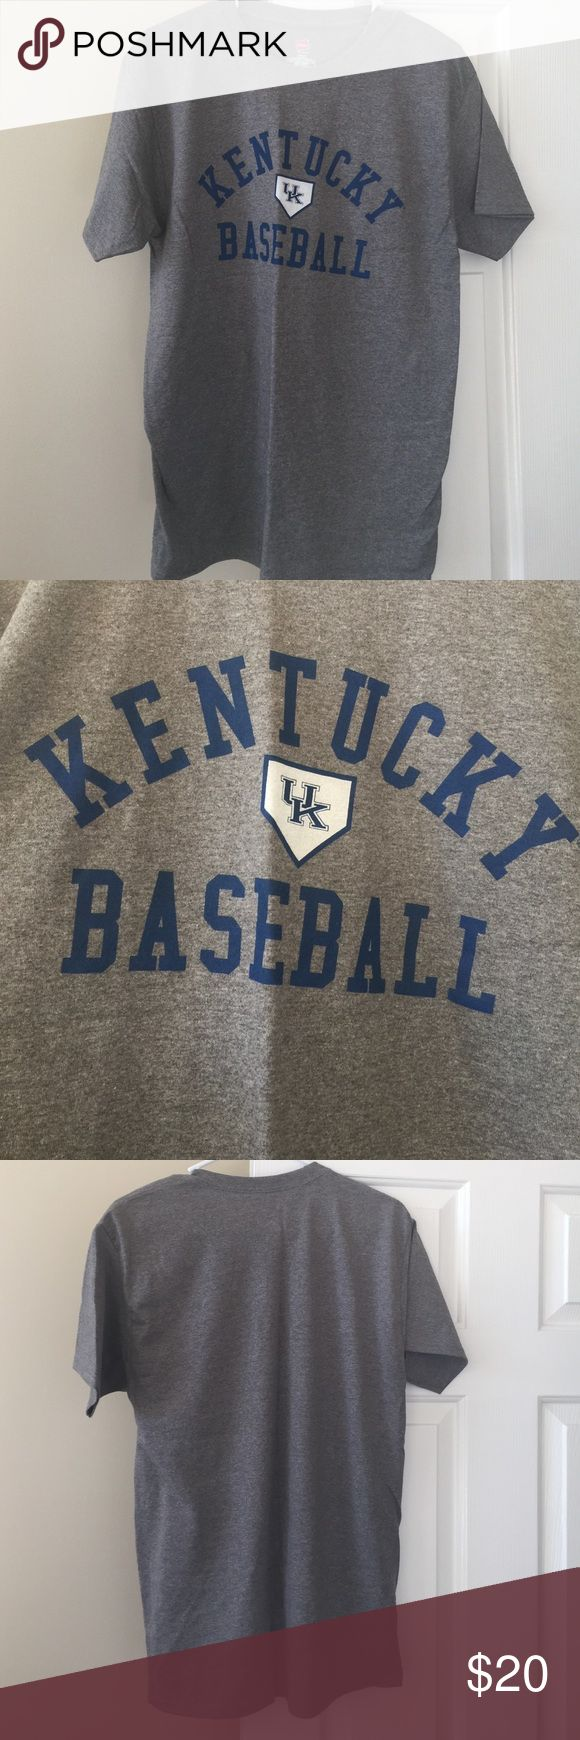 Kentucky Baseball Tee Brand new without tags never worn, UK baseball tee. In excellent condition, men's size M. Shirts Tees - Short Sleeve